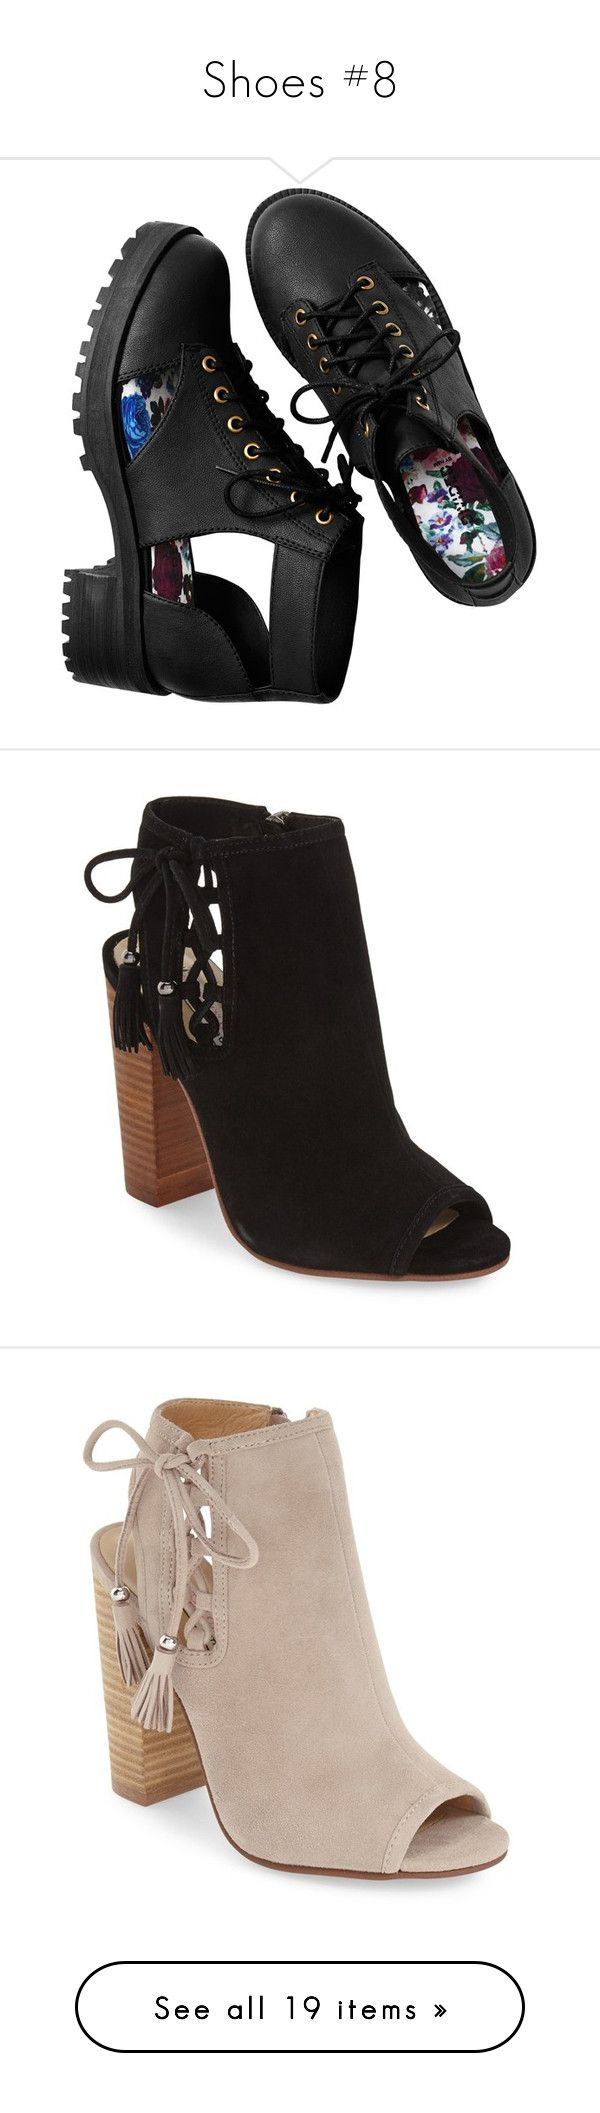 """Shoes #8"" by ameyzinha ❤ liked on Polyvore featuring shoes, boots, ankle booties, black, clothes - shoes, black booties, summer boots, black ankle booties, summer booties and h&m boots"